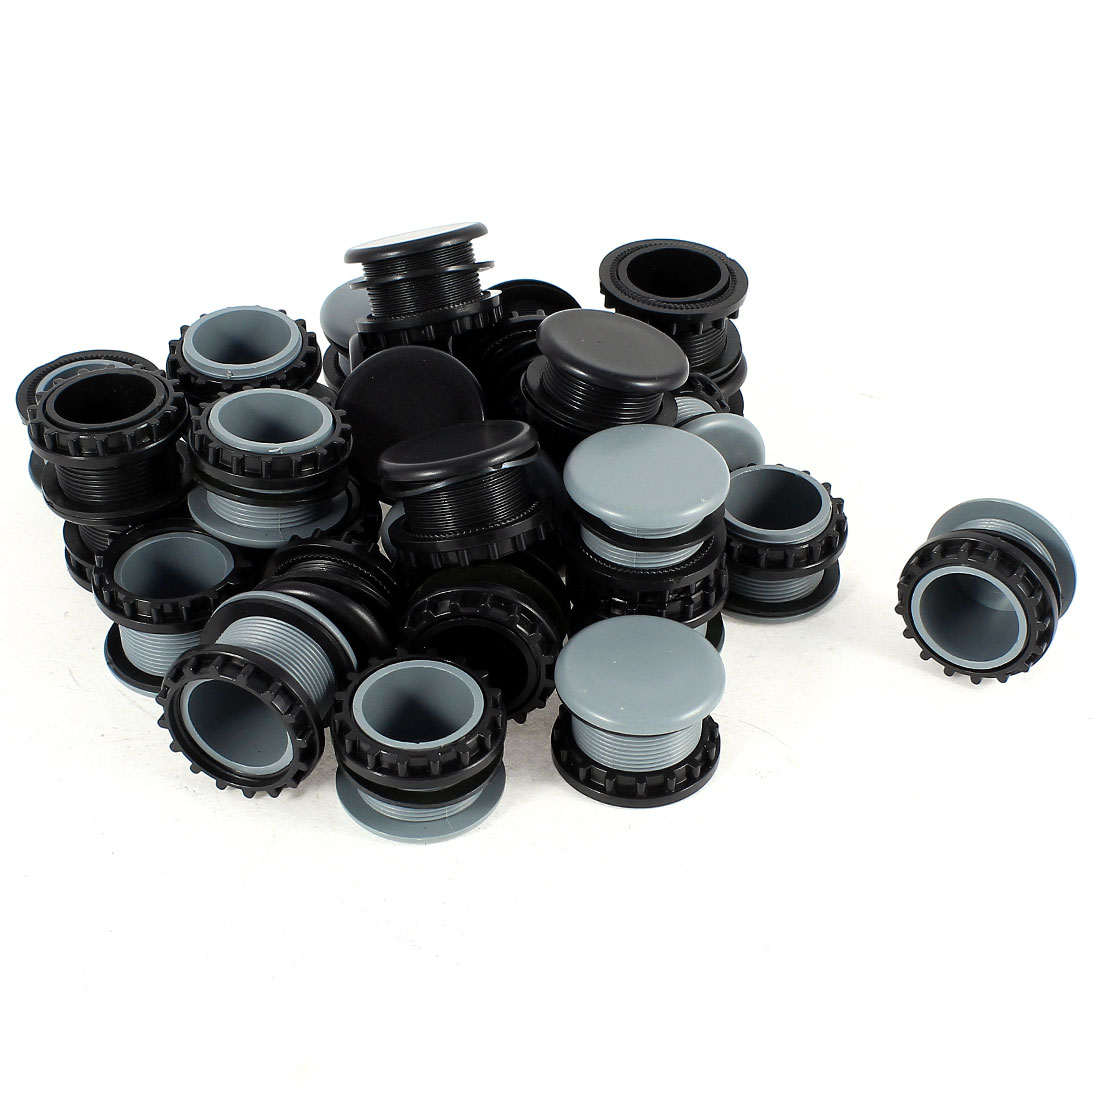 30 Pcs Black + Gray Plastic Push Button Switch 22mm Mount Hole Panel Cover Cap